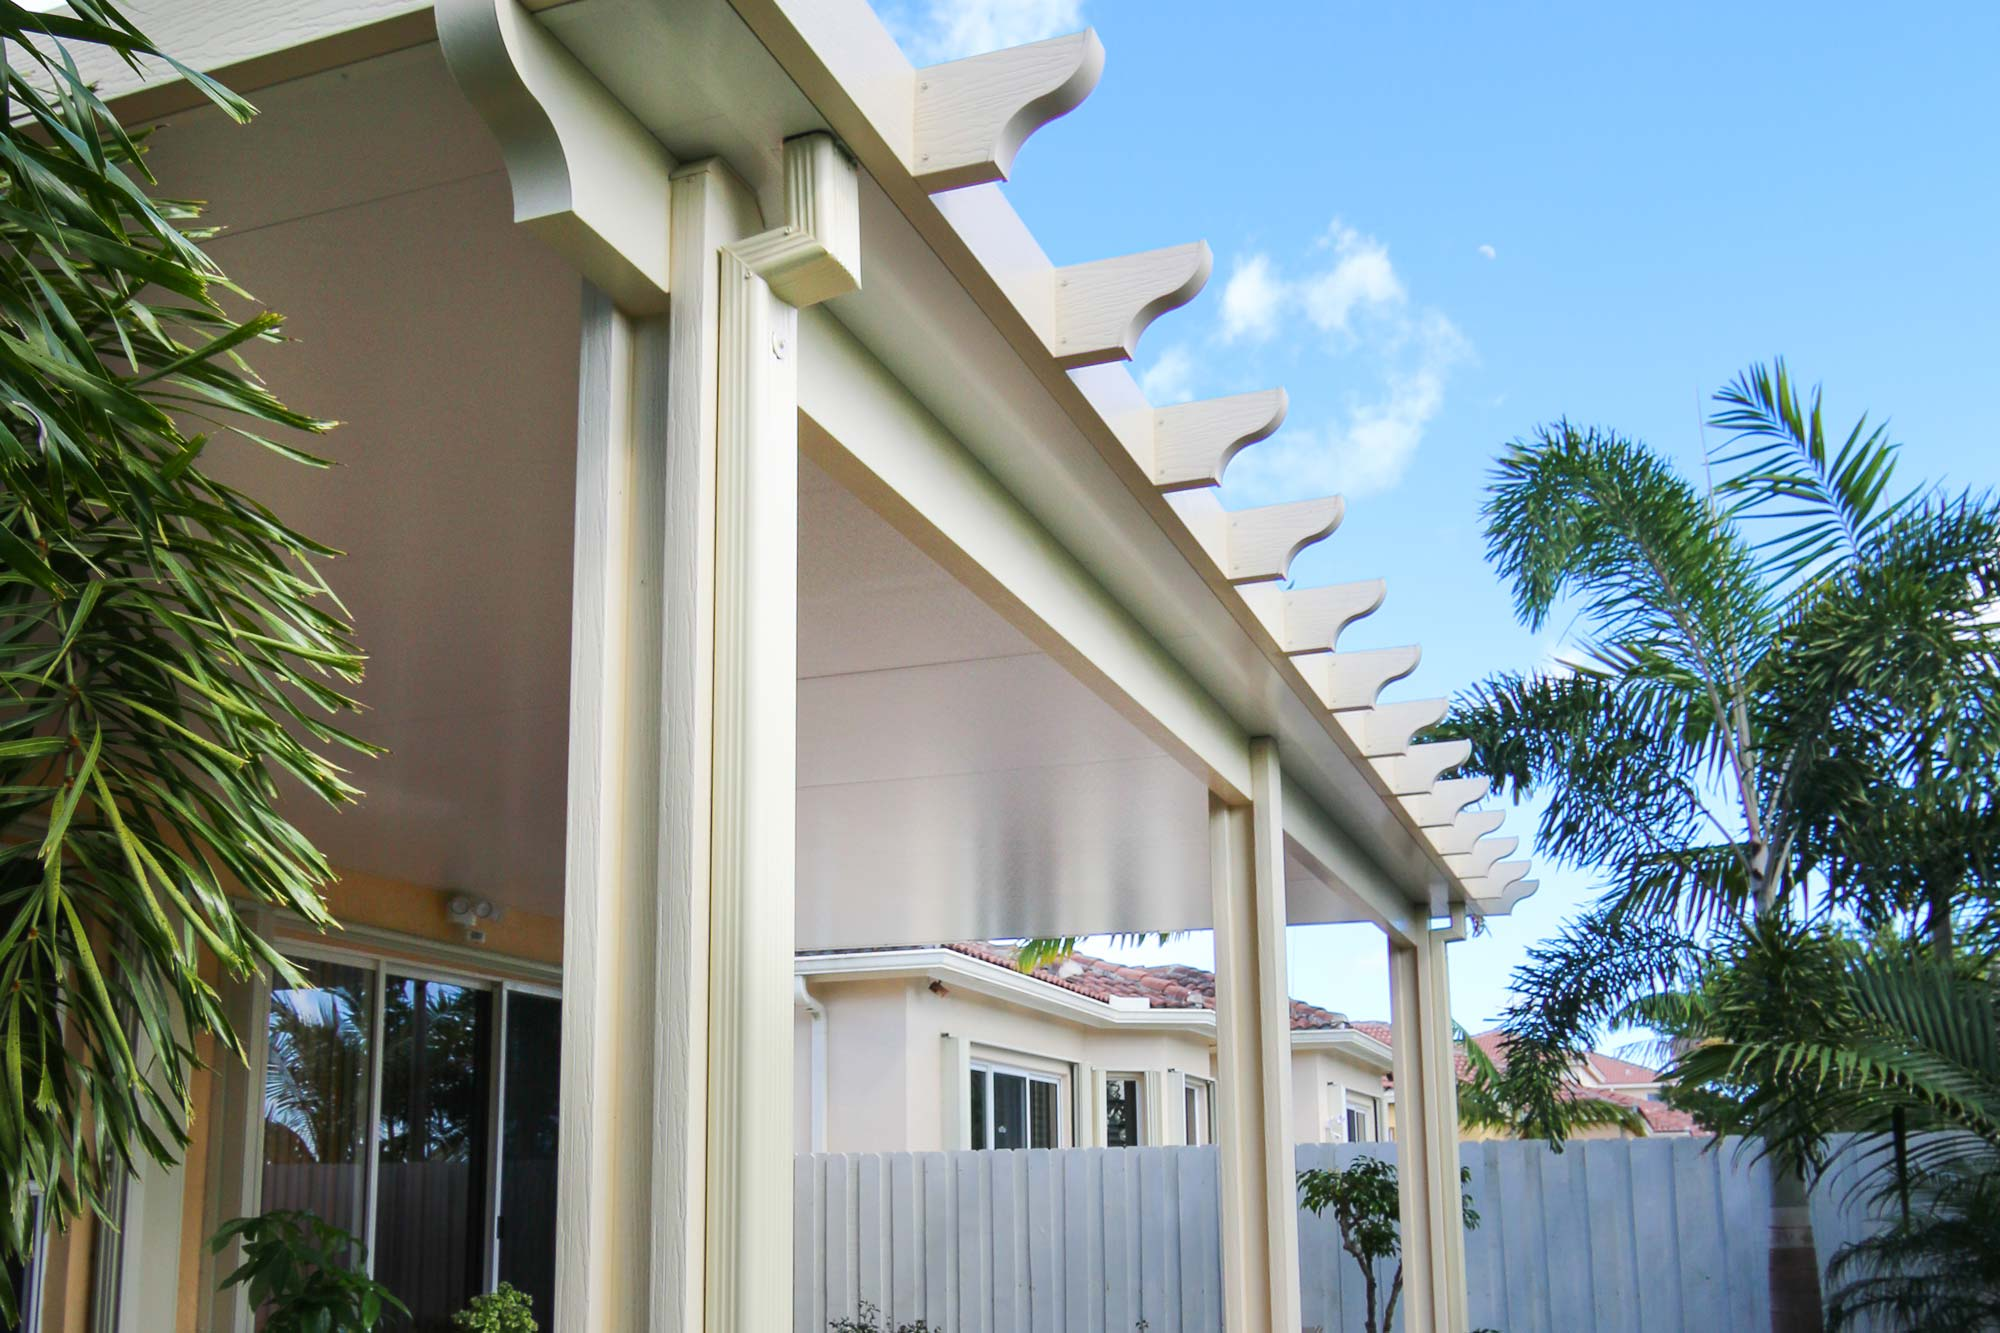 Check-out-the-details-of-this-Patio-Roof-with-Decorative-Truss-Ends-to-provide-a-more-elegant-look.